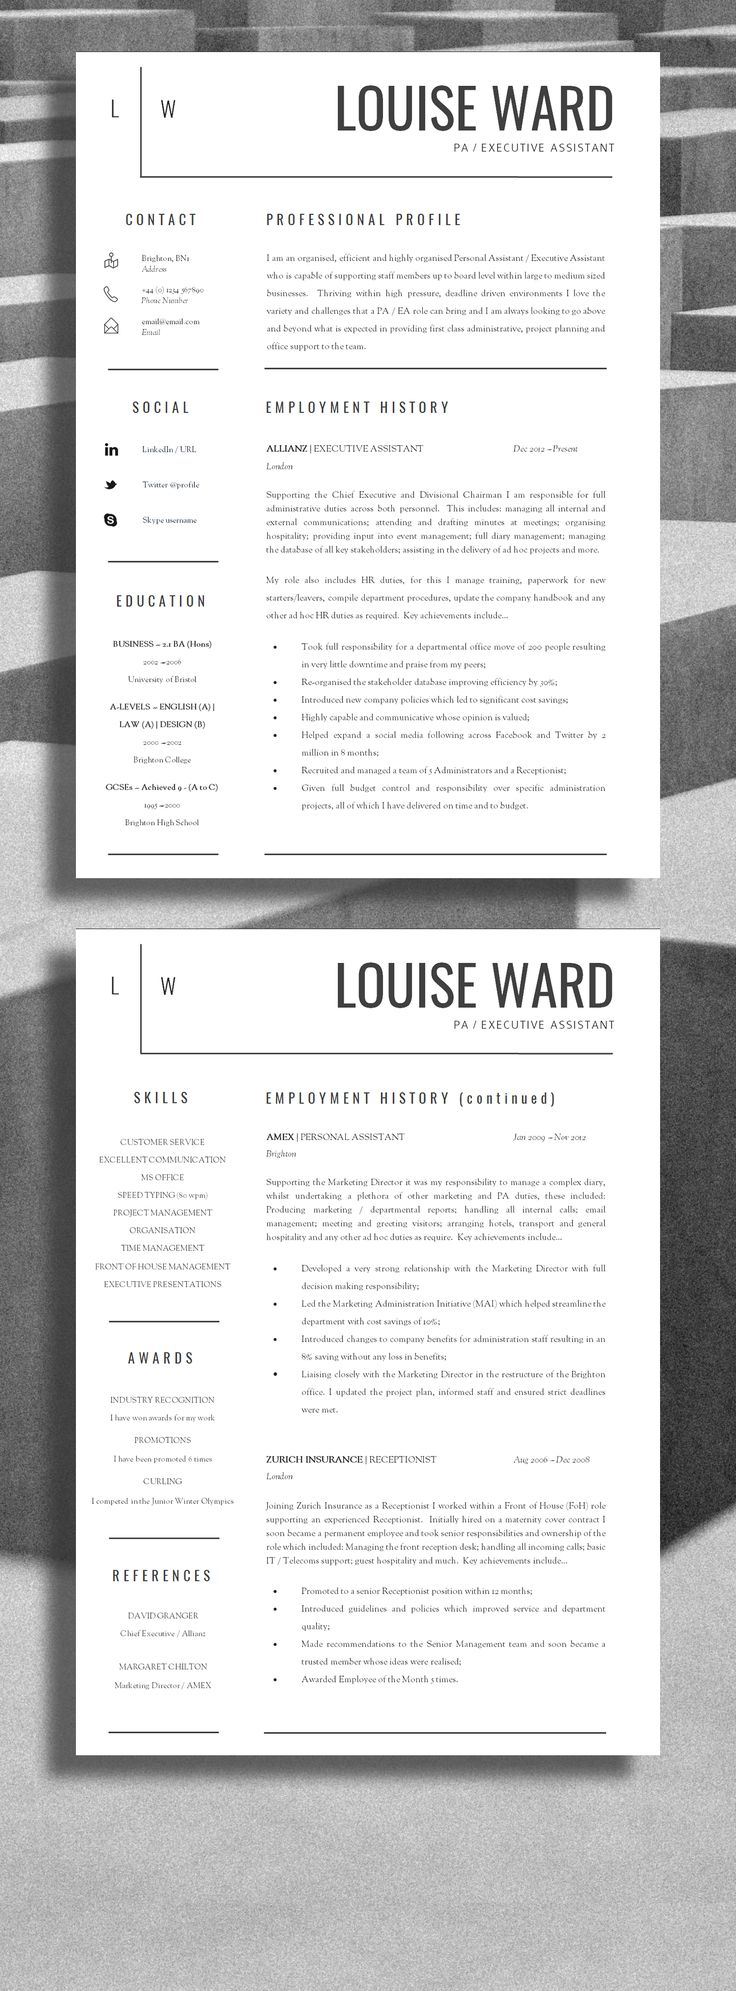 resume template cv template cover letter resume advice for ms word instant digital download mac or pc aldgate resume template - Best Resume Layout